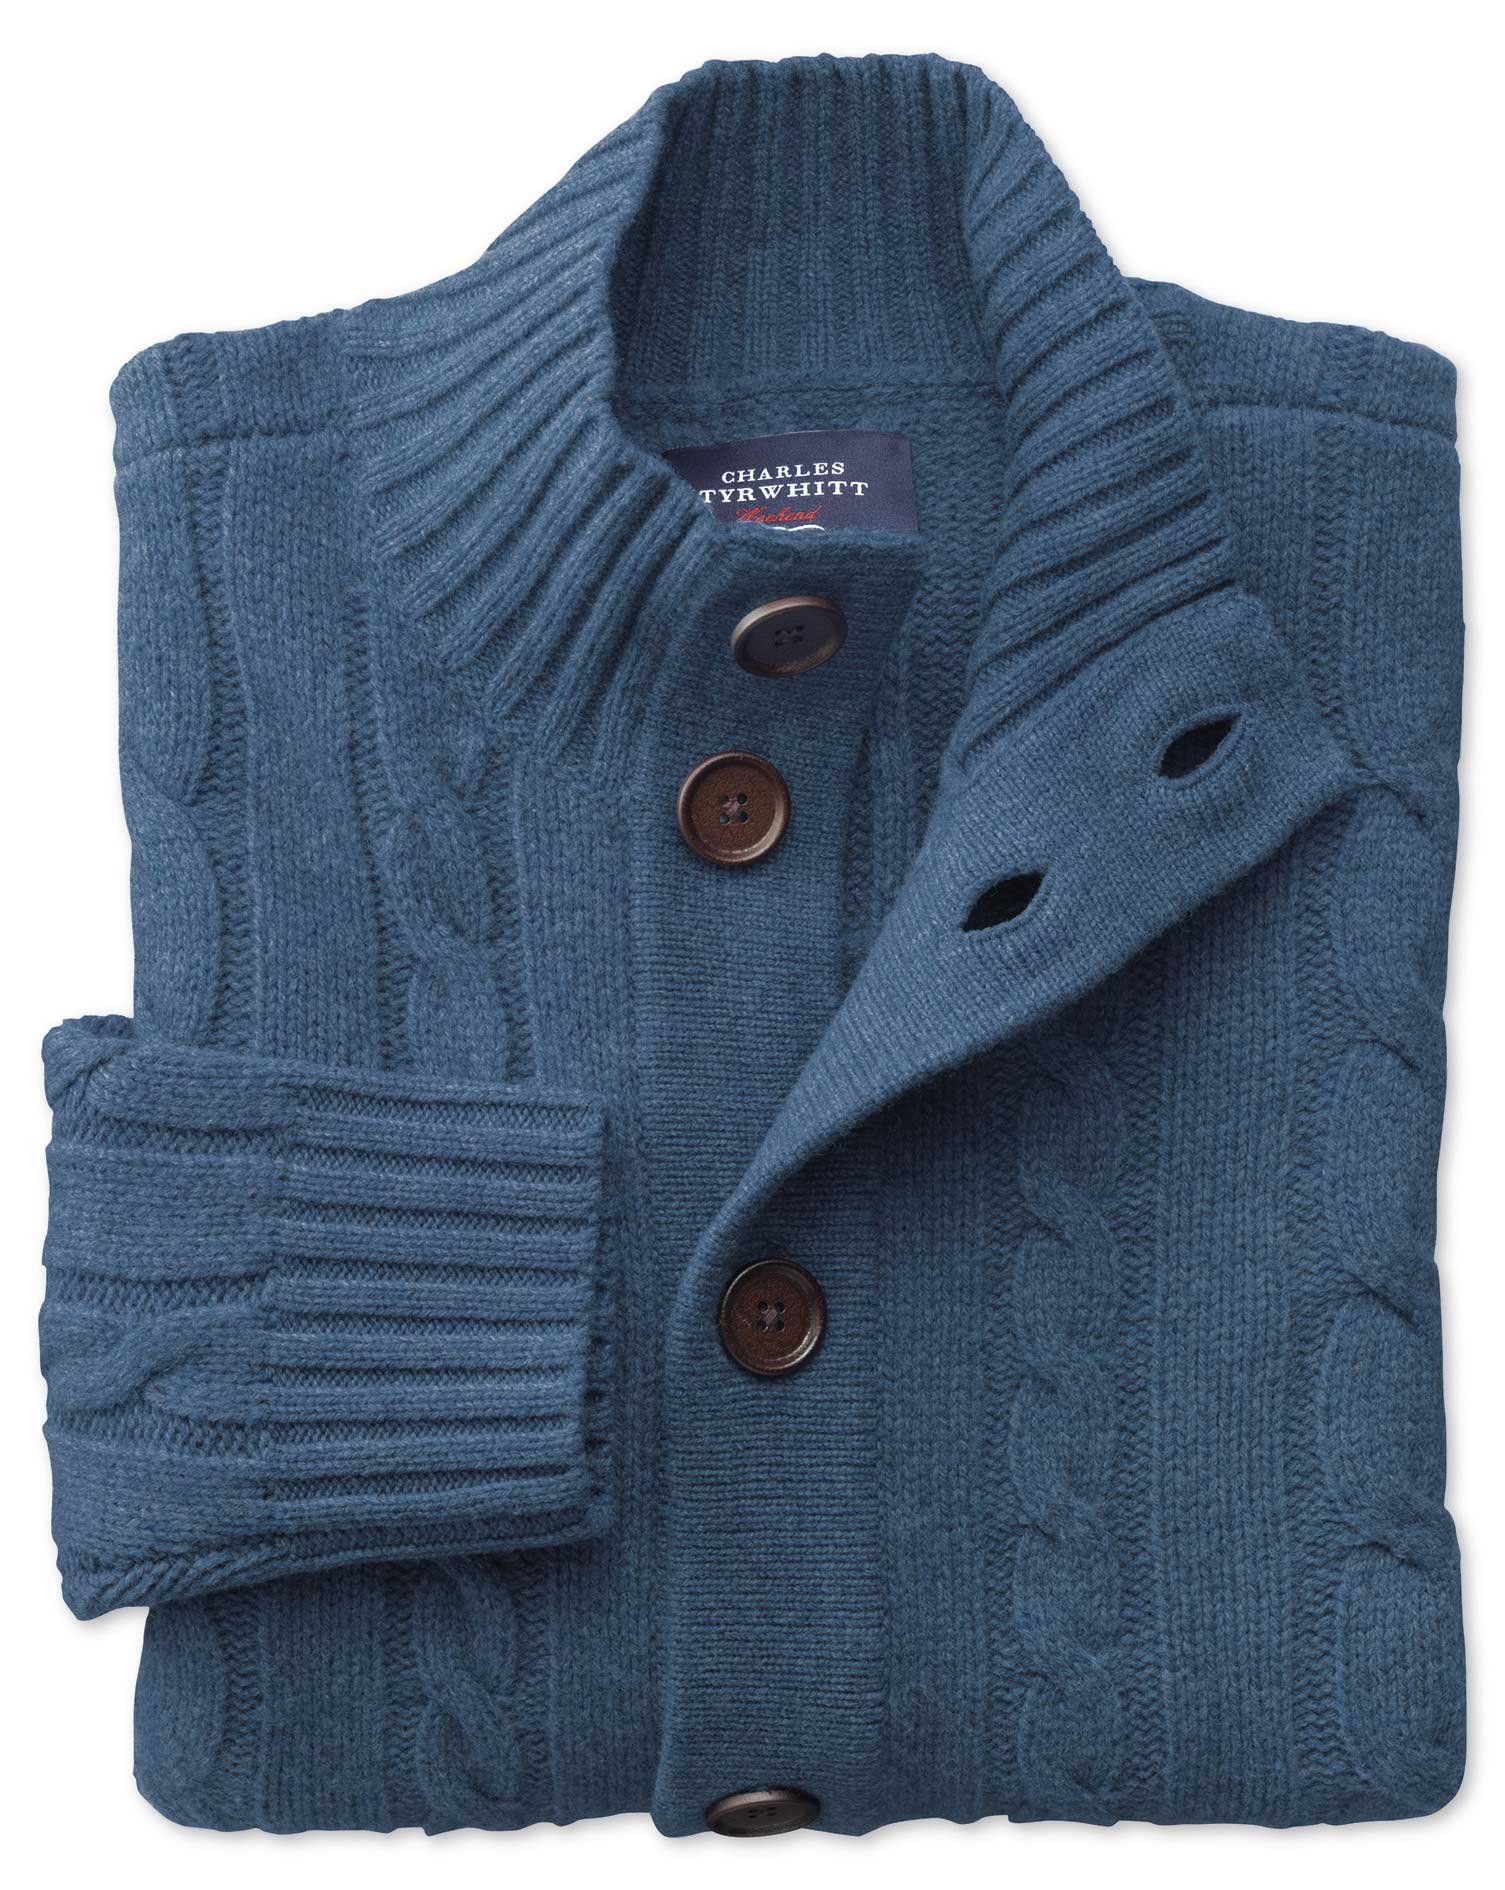 Indigo Lambswool Cable Cardigan Size XL by Charles Tyrwhitt